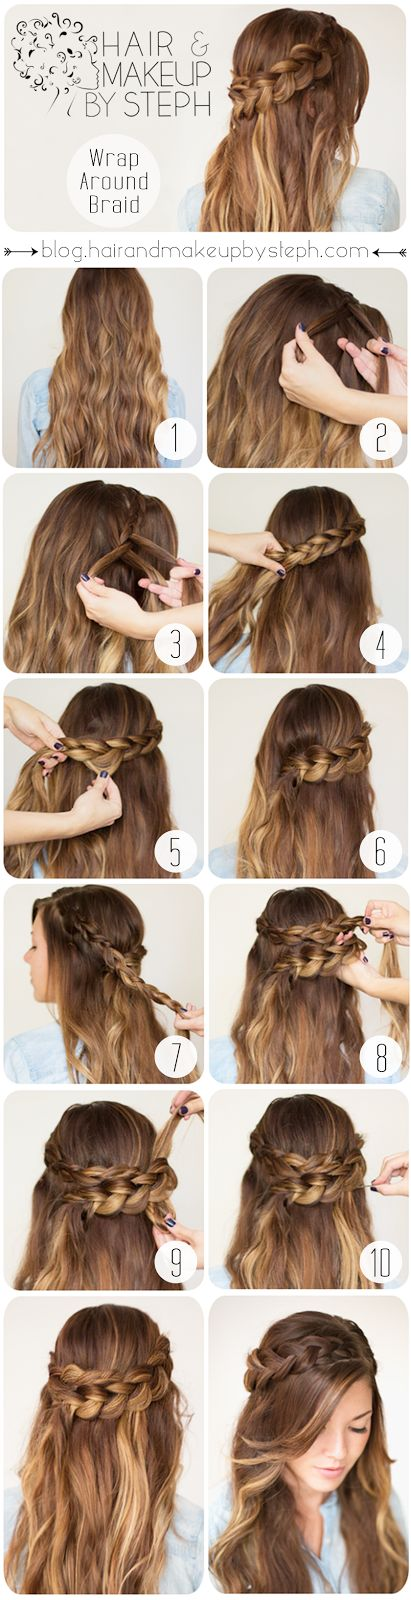 Cool 1000 Ideas About Easy Homecoming Hairstyles On Pinterest Short Hairstyles For Black Women Fulllsitofus